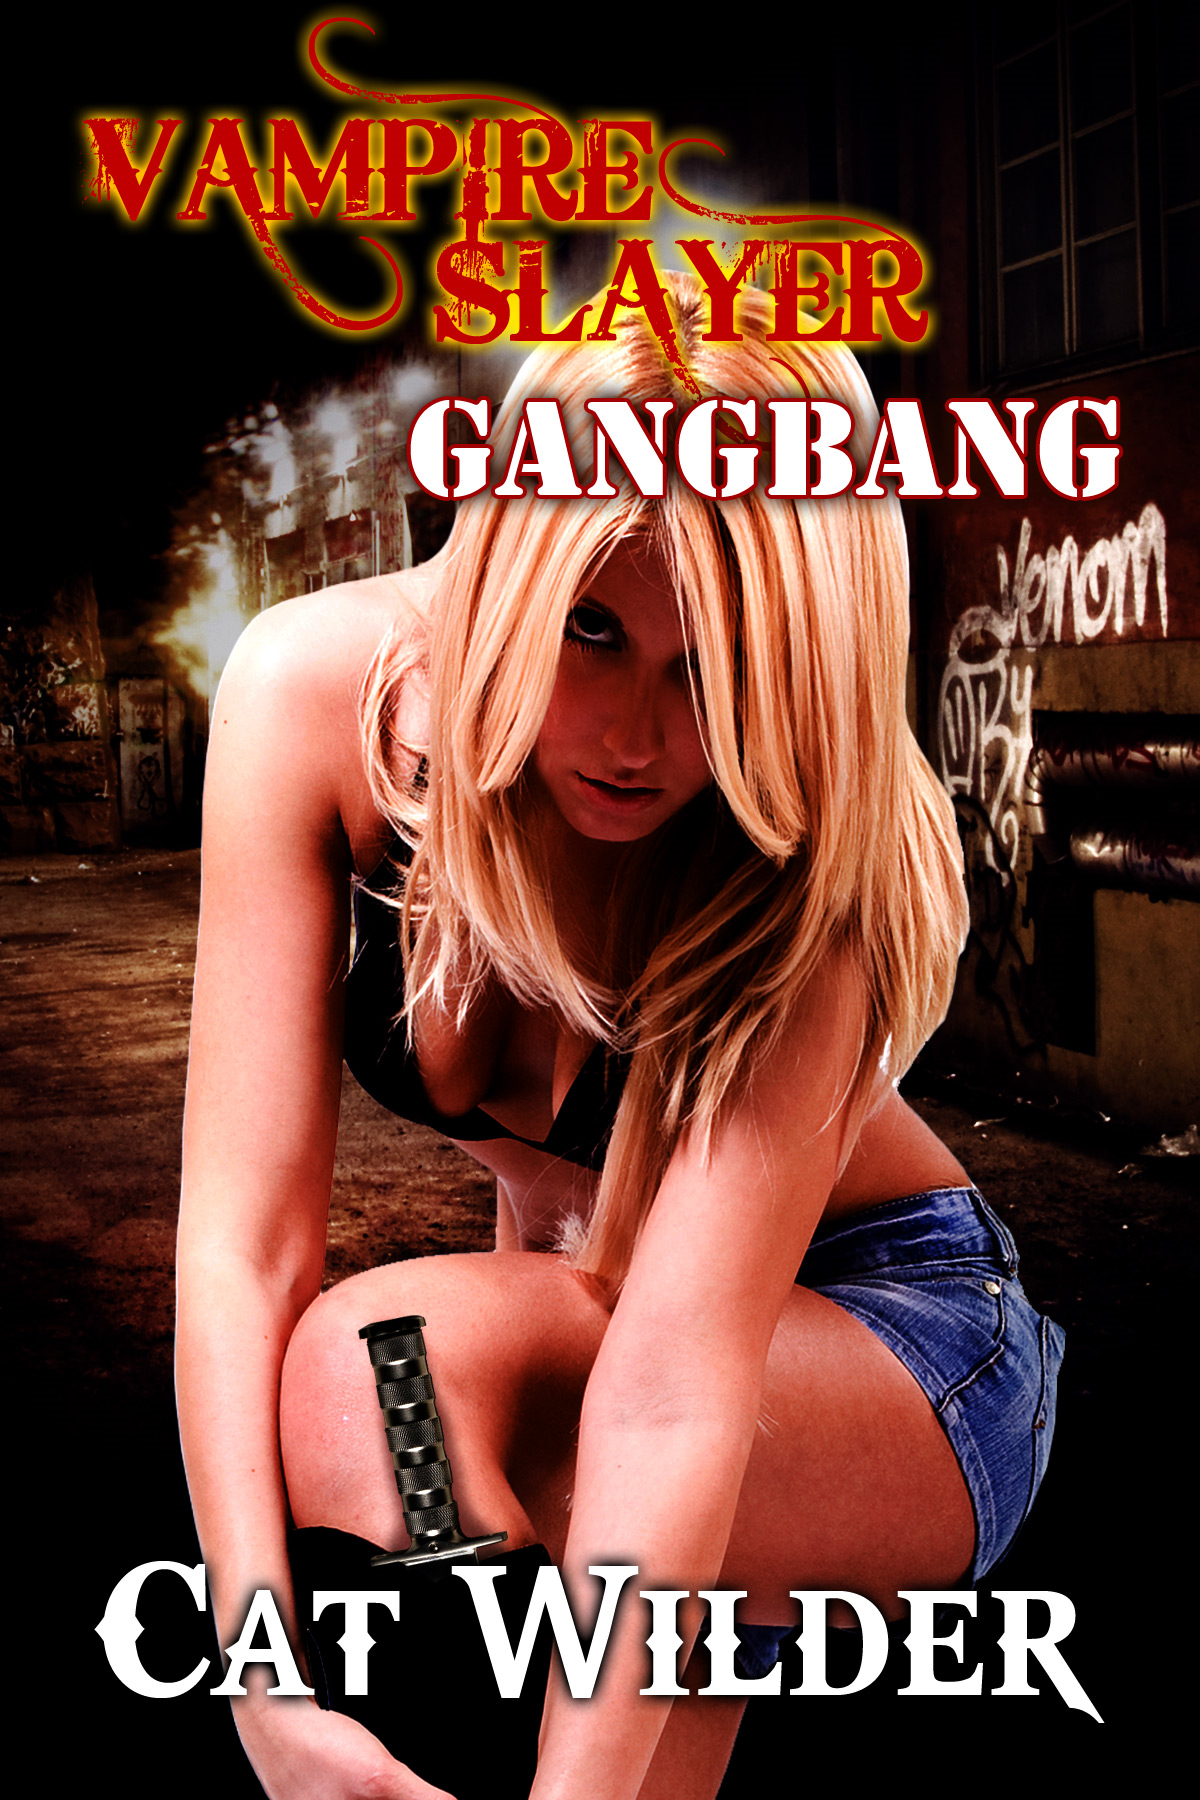 Vampire Slayer Gangbang By: Cat Wilder